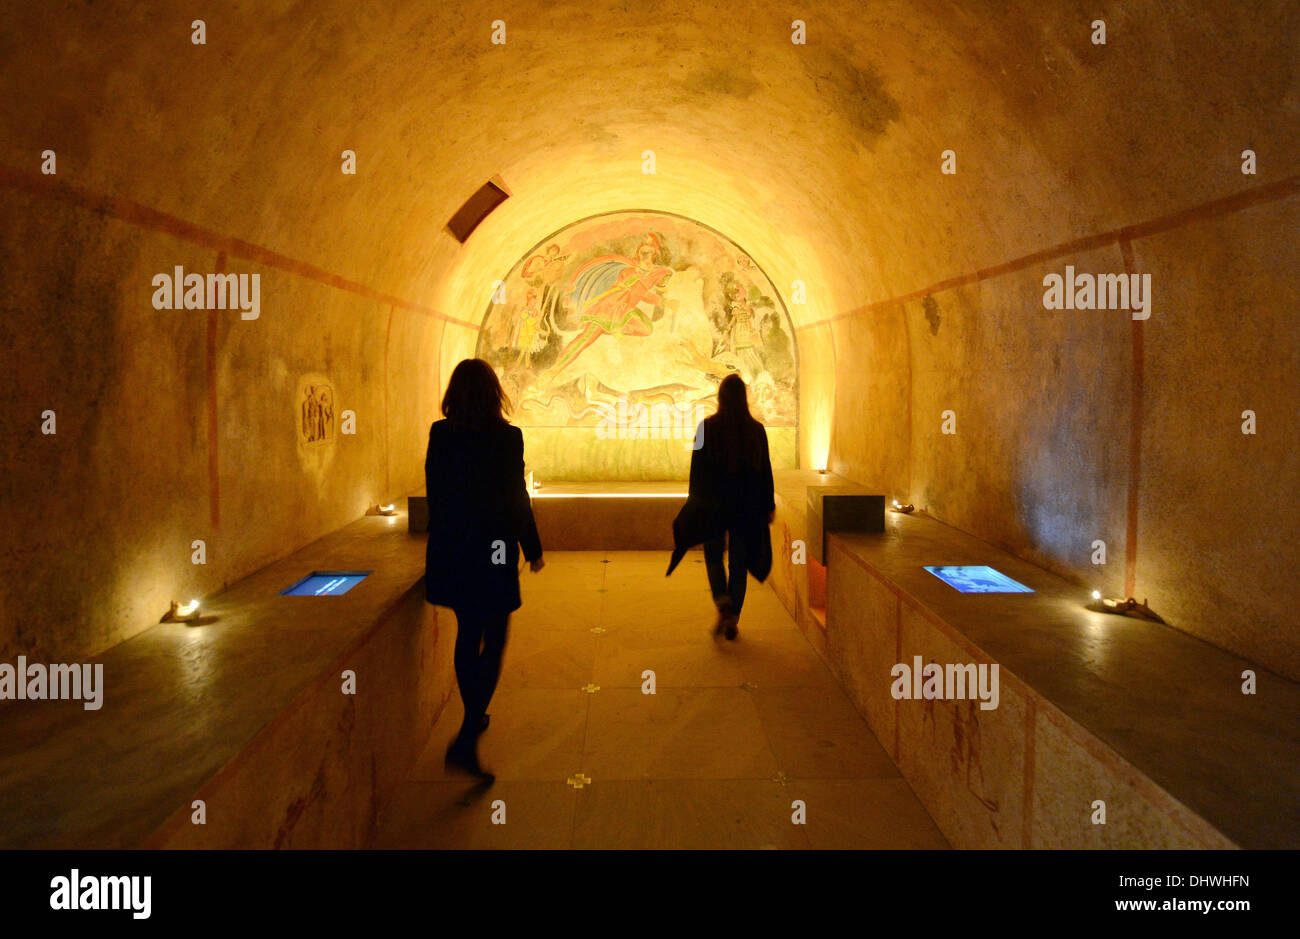 Karlsruhe, Germany. 14th Nov, 2013. Visitors of the Baden State Museum in the castle Karlsruhe look at the replication of the mithraeum of Santa Maria Capua Vetere in Karlsruhe, Germany, 14 November 2013. It is part of the exhibition 'Empire of the Gods - Mithras - Christ: cults and religion in the Roman Empire' which takes place from 16 November 2013 to 18 May 2014. Photo: Uli Deck/dpa/Alamy Live News - Stock Image